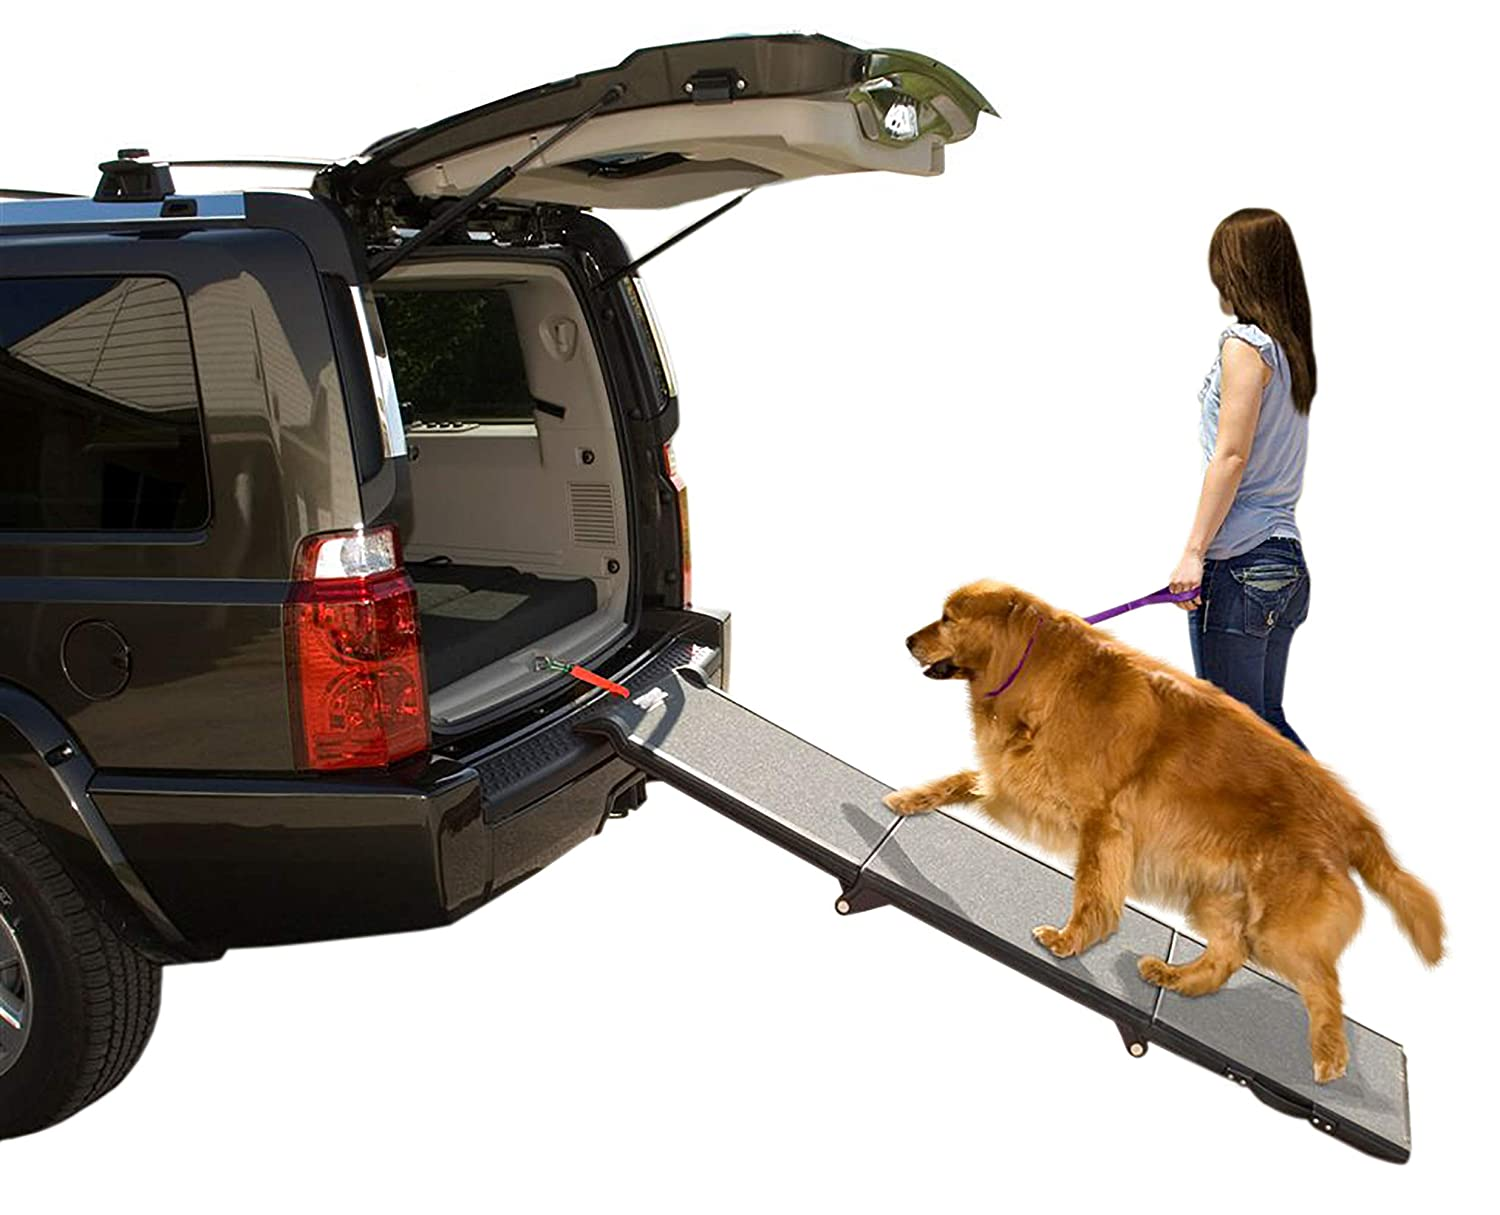 Pet Gear Tri-Fold Ramp 71 Inch Long Extra Wide Portable Pet Ramp for  Dogs/Cats up to 200lbs, Patented Compact/Easy Fold with Safety Tether:  Amazon.in: Pet Supplies